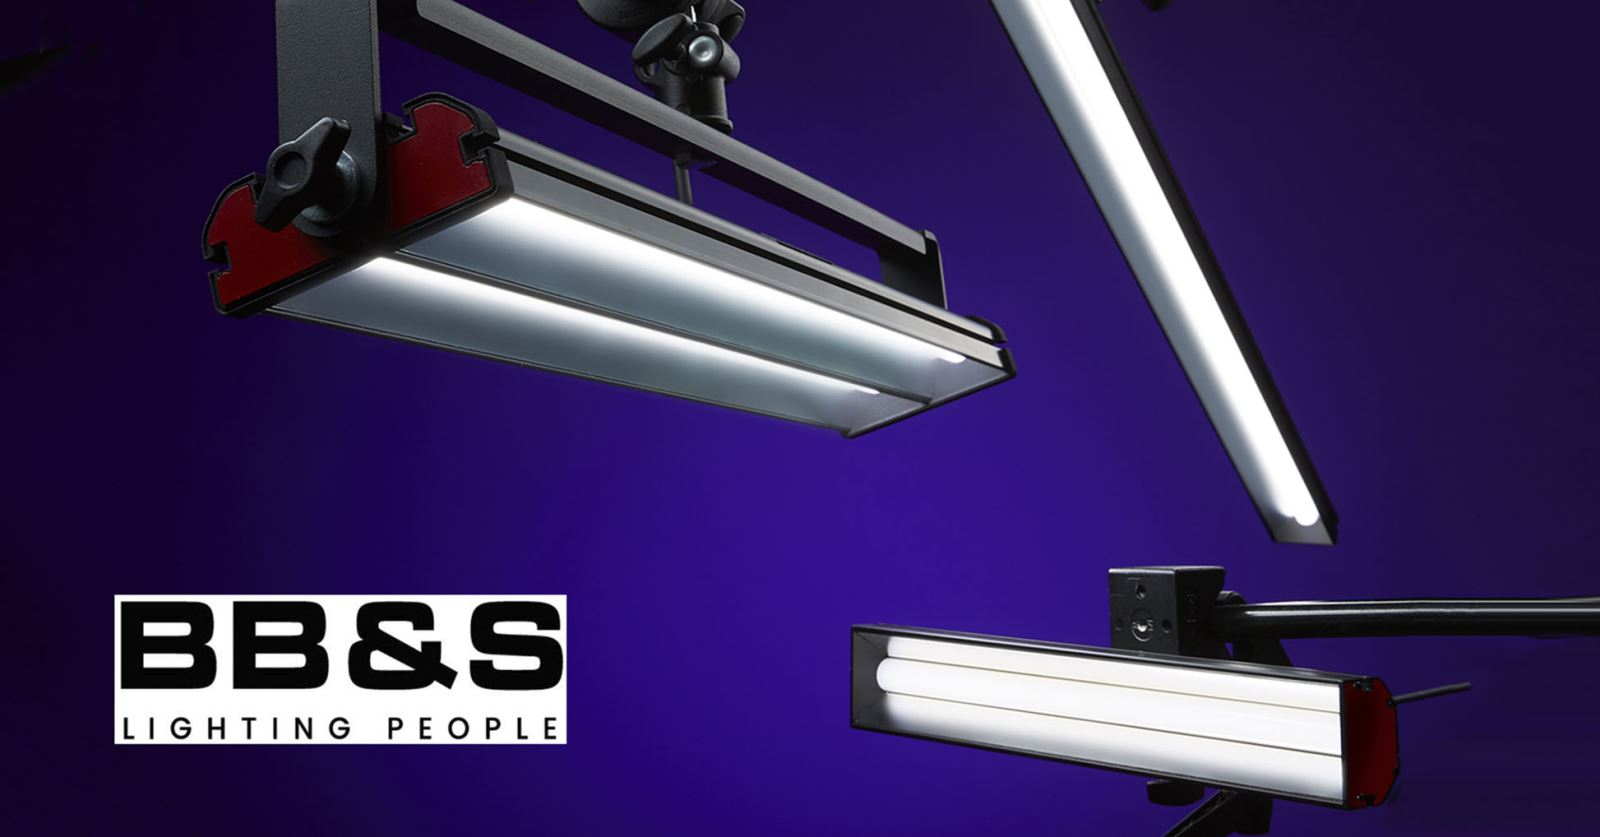 The GTC is delighted that BB&S Lighting has joined as a sponsor company